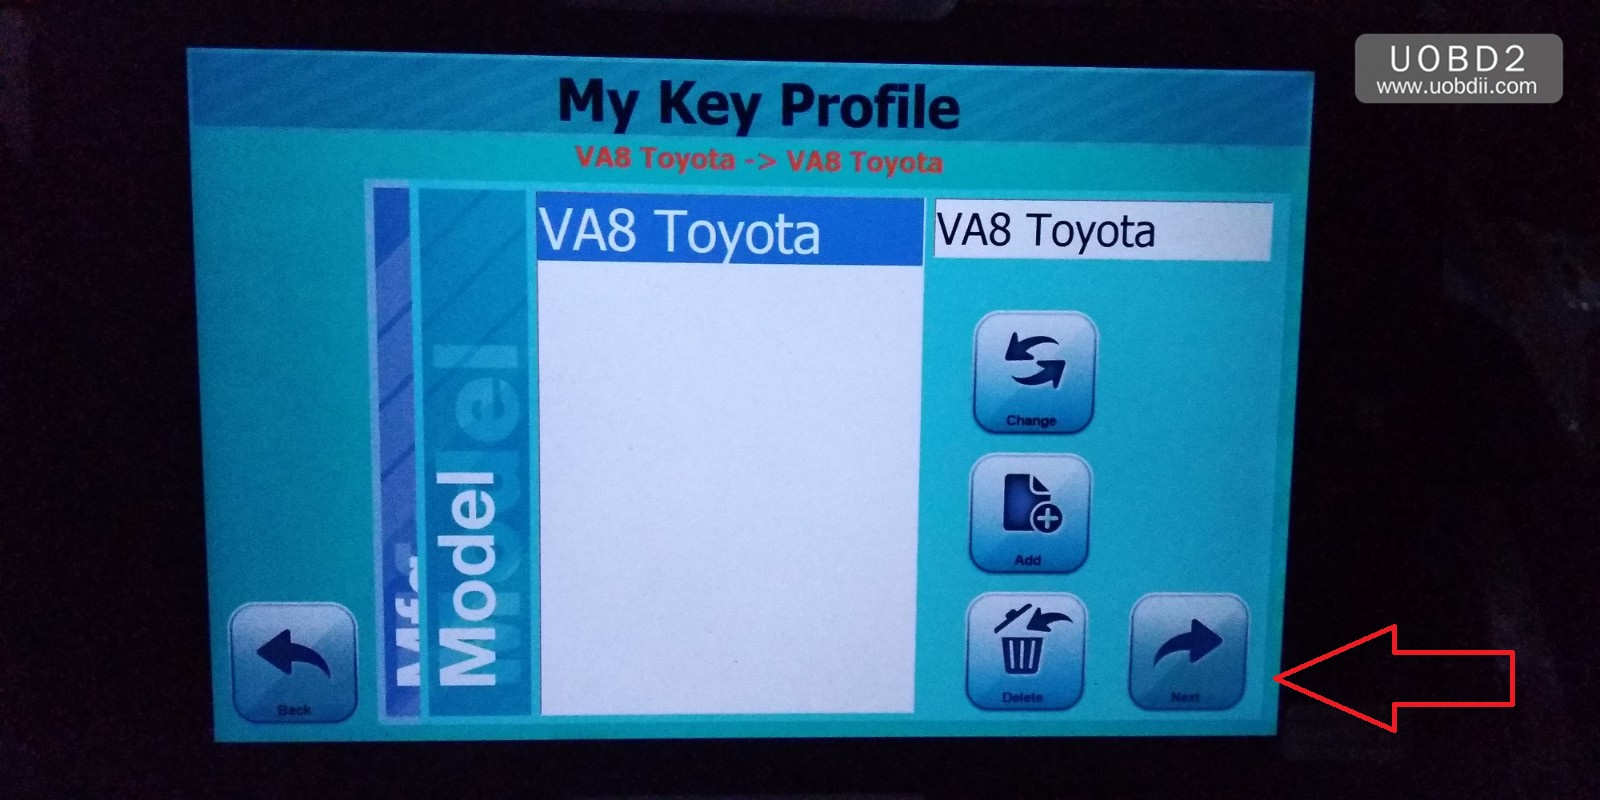 sec-e9z-create-new-key-for-va8-toyota-08